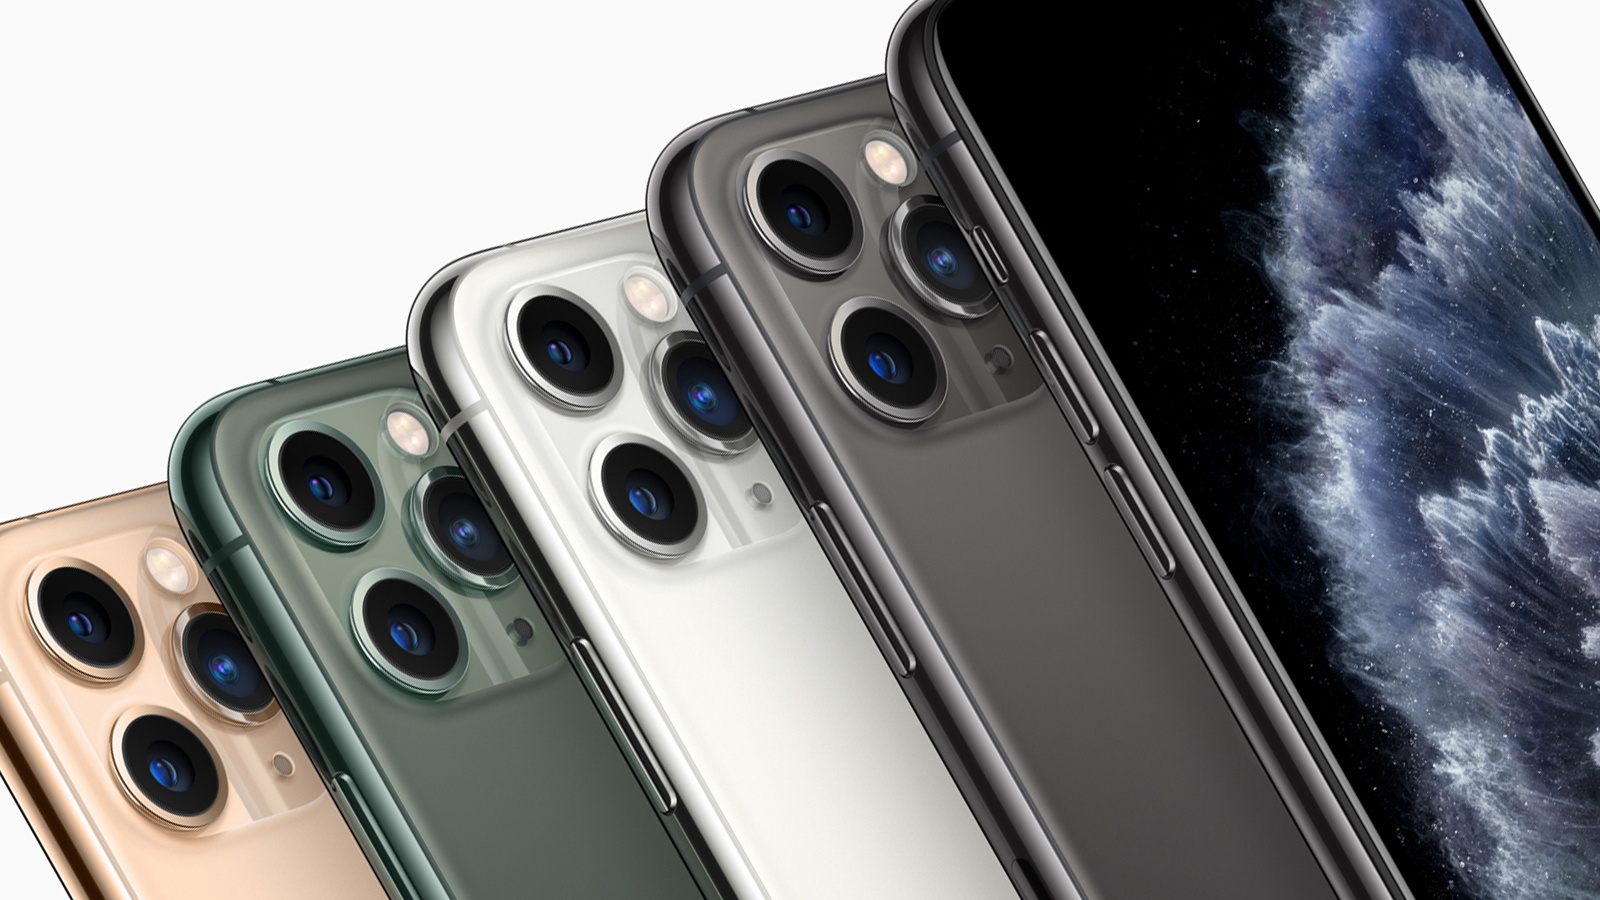 Best iPhone 11 Pro Max Skins , Top 5 High,End Skins to Buy